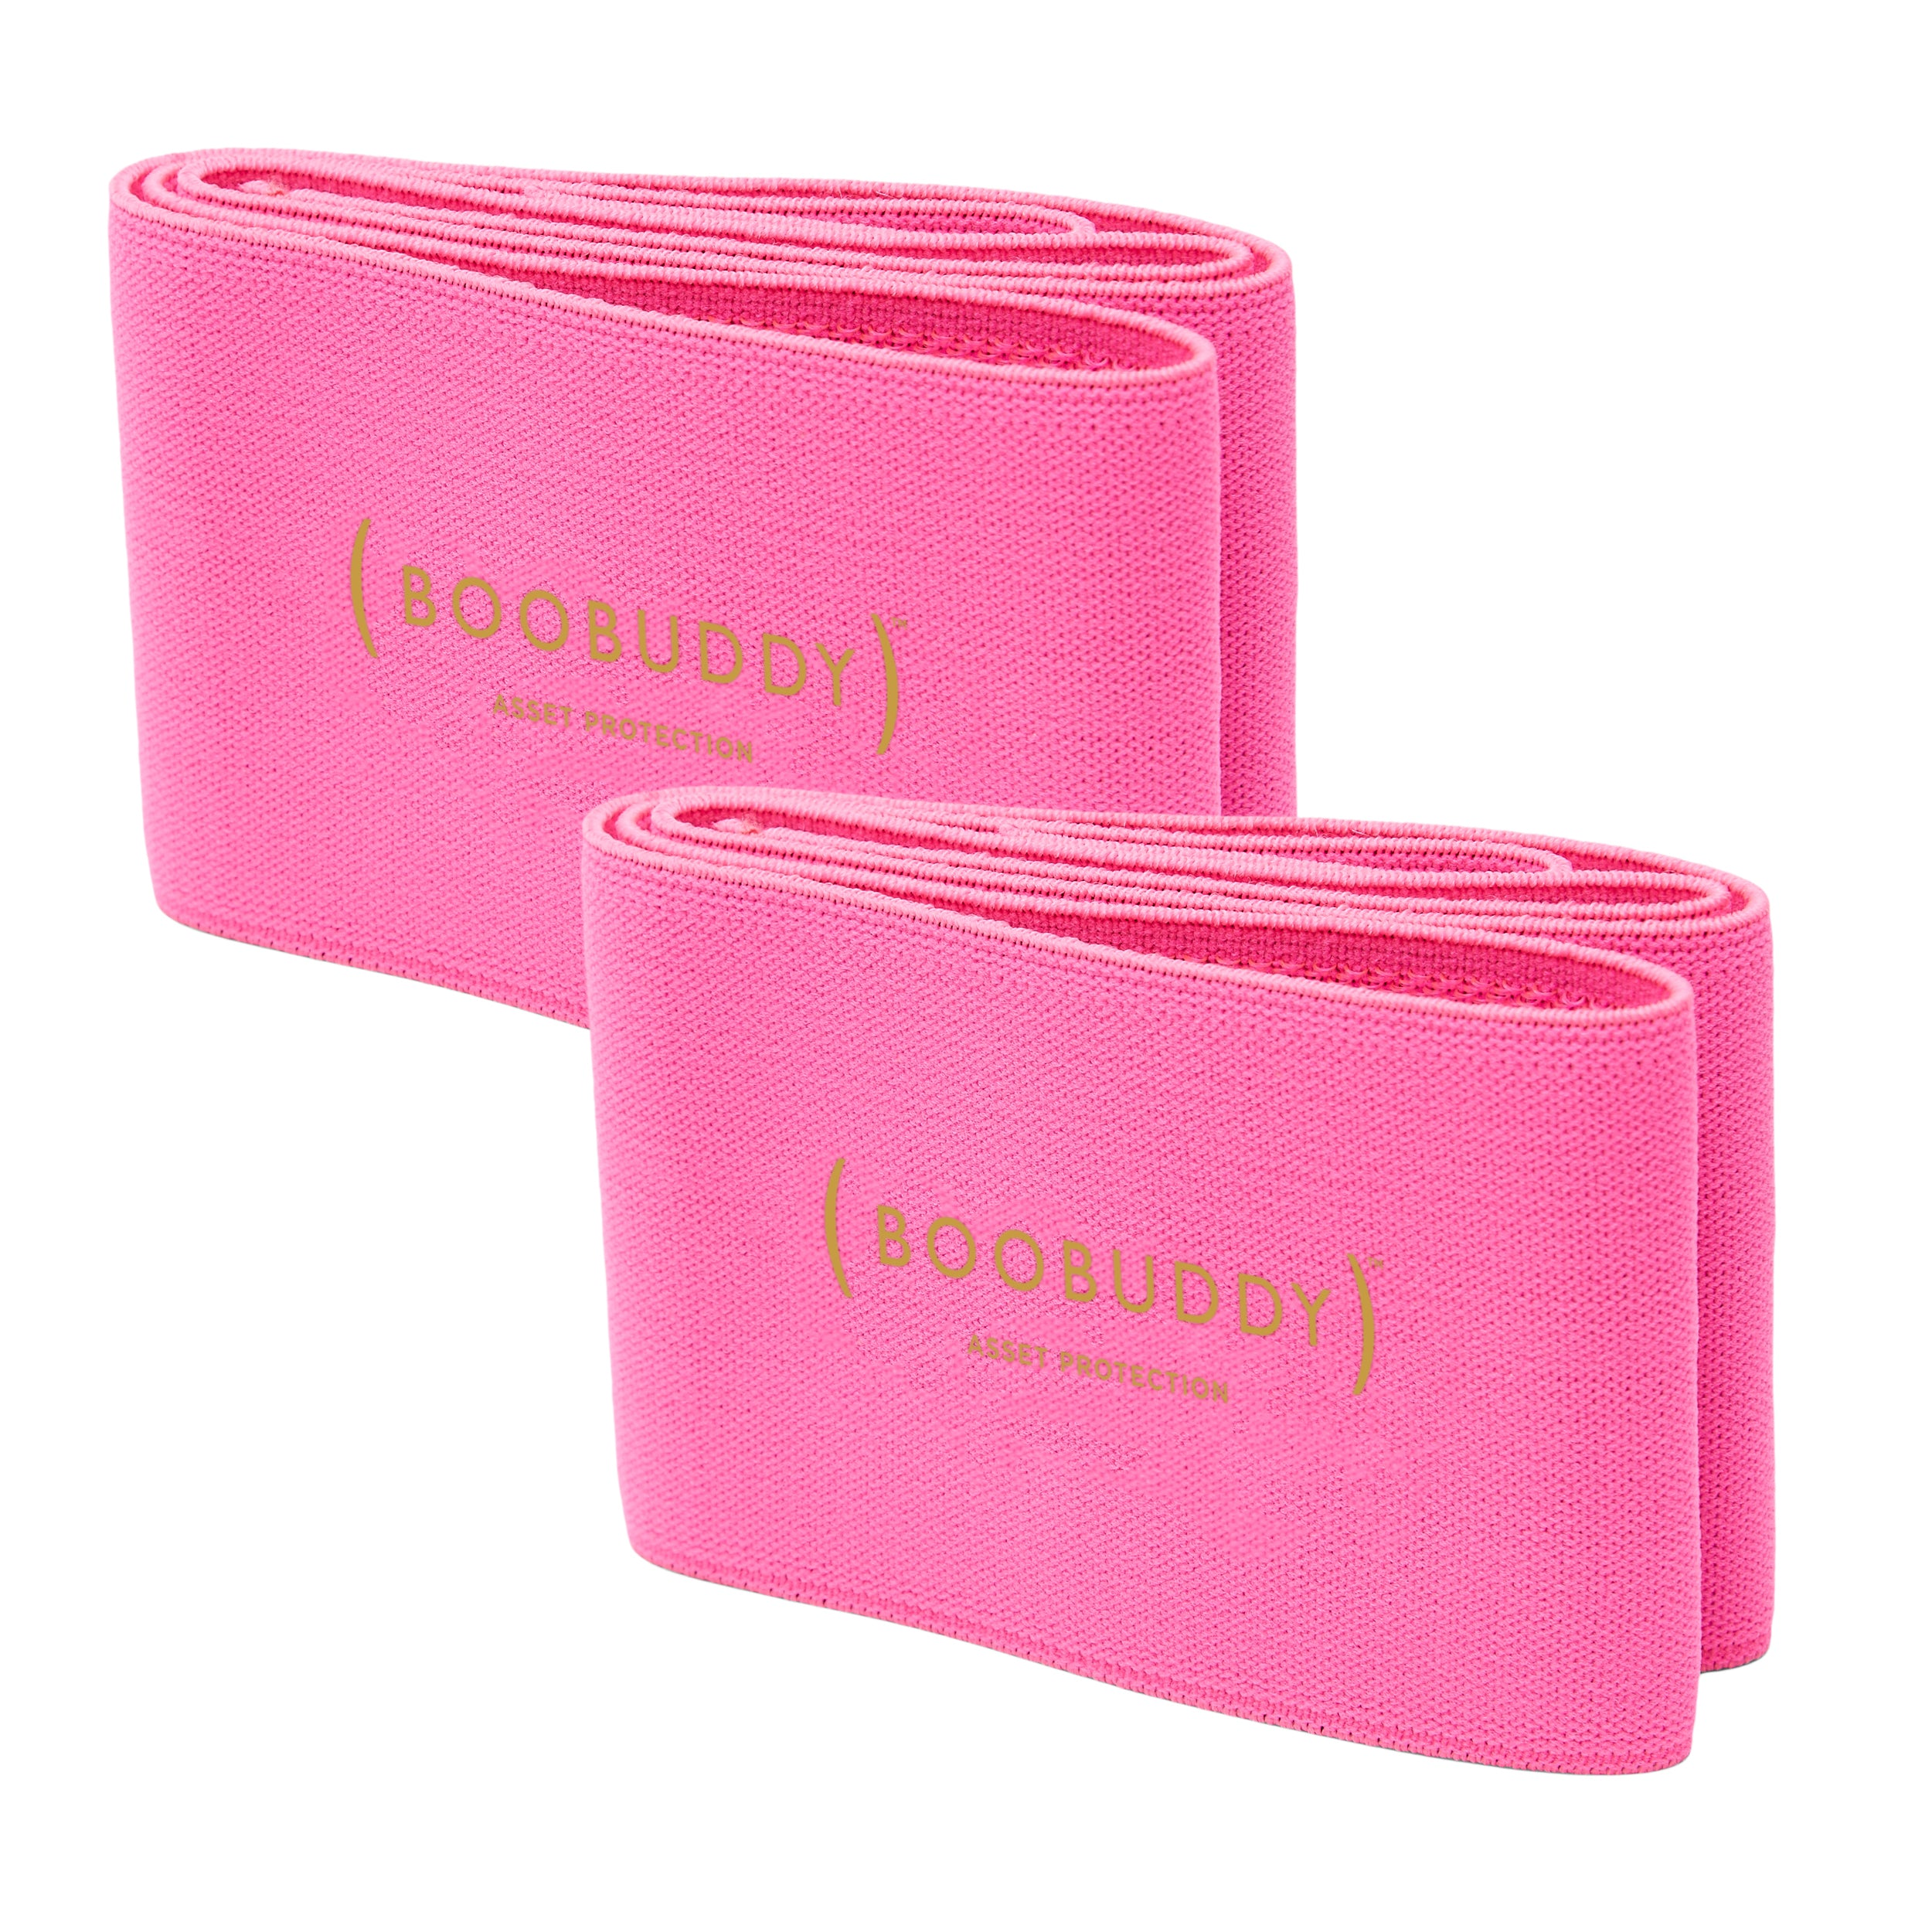 Boobuddy Adjustable Breast Support Band | Pink Bundle | Save £13!